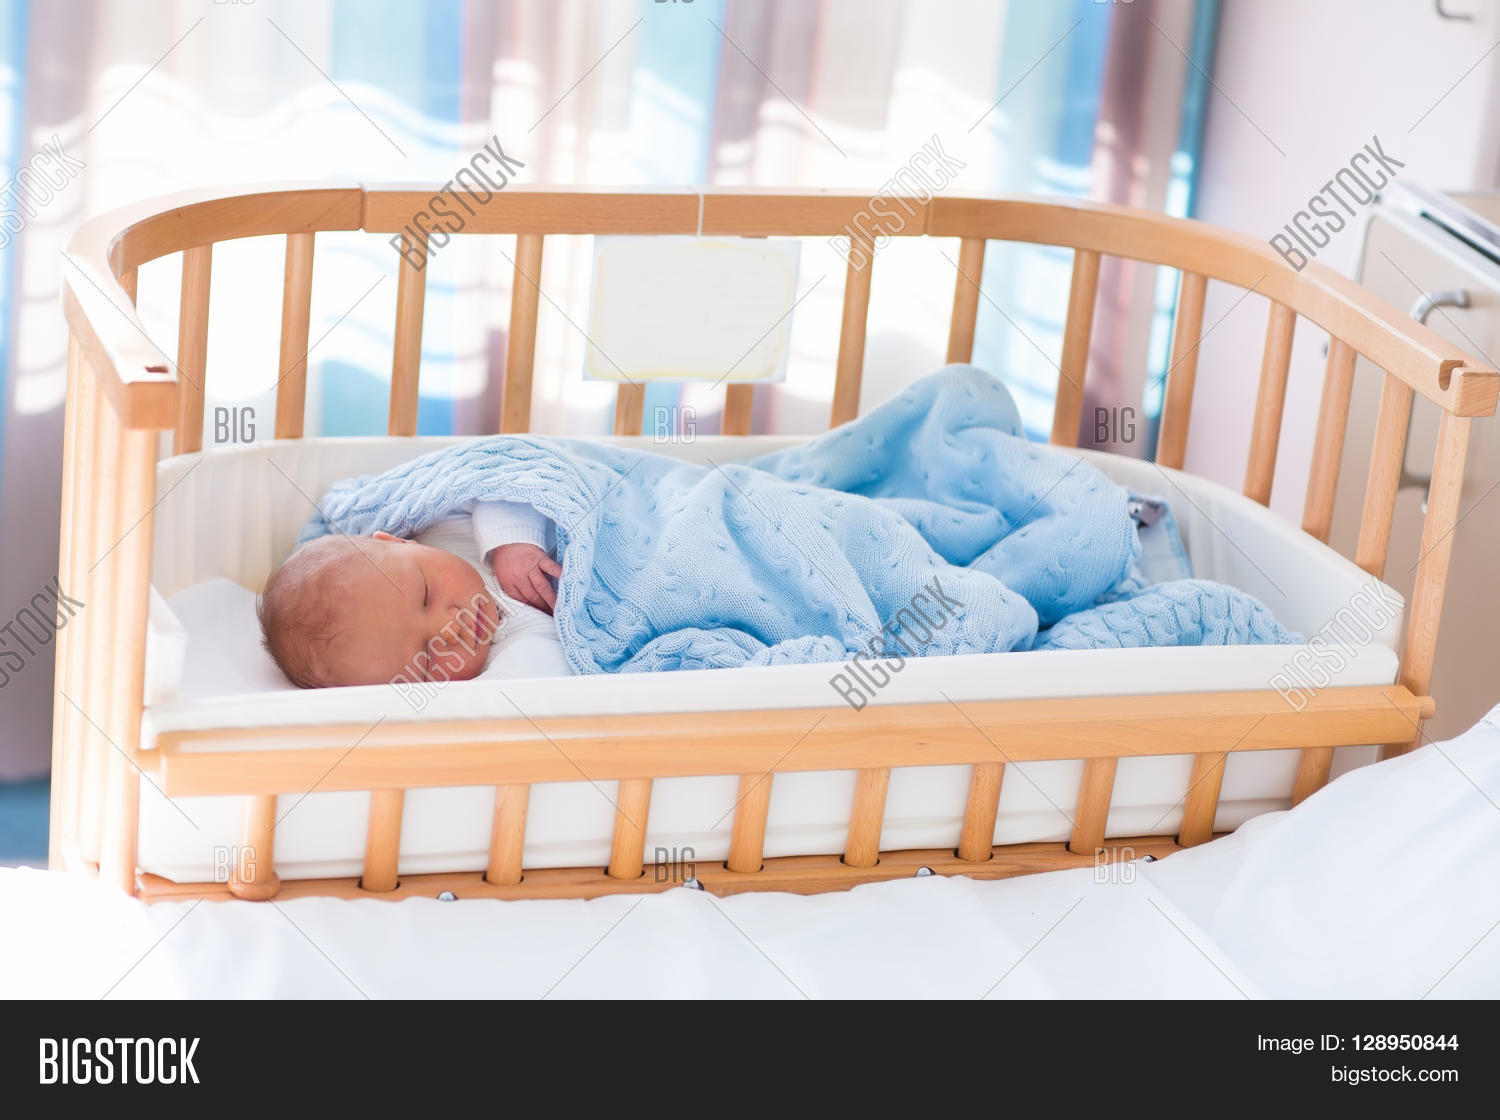 Newborn Bassinet Best Newborn Baby Hospital Image Photo Free Trial Bigstock